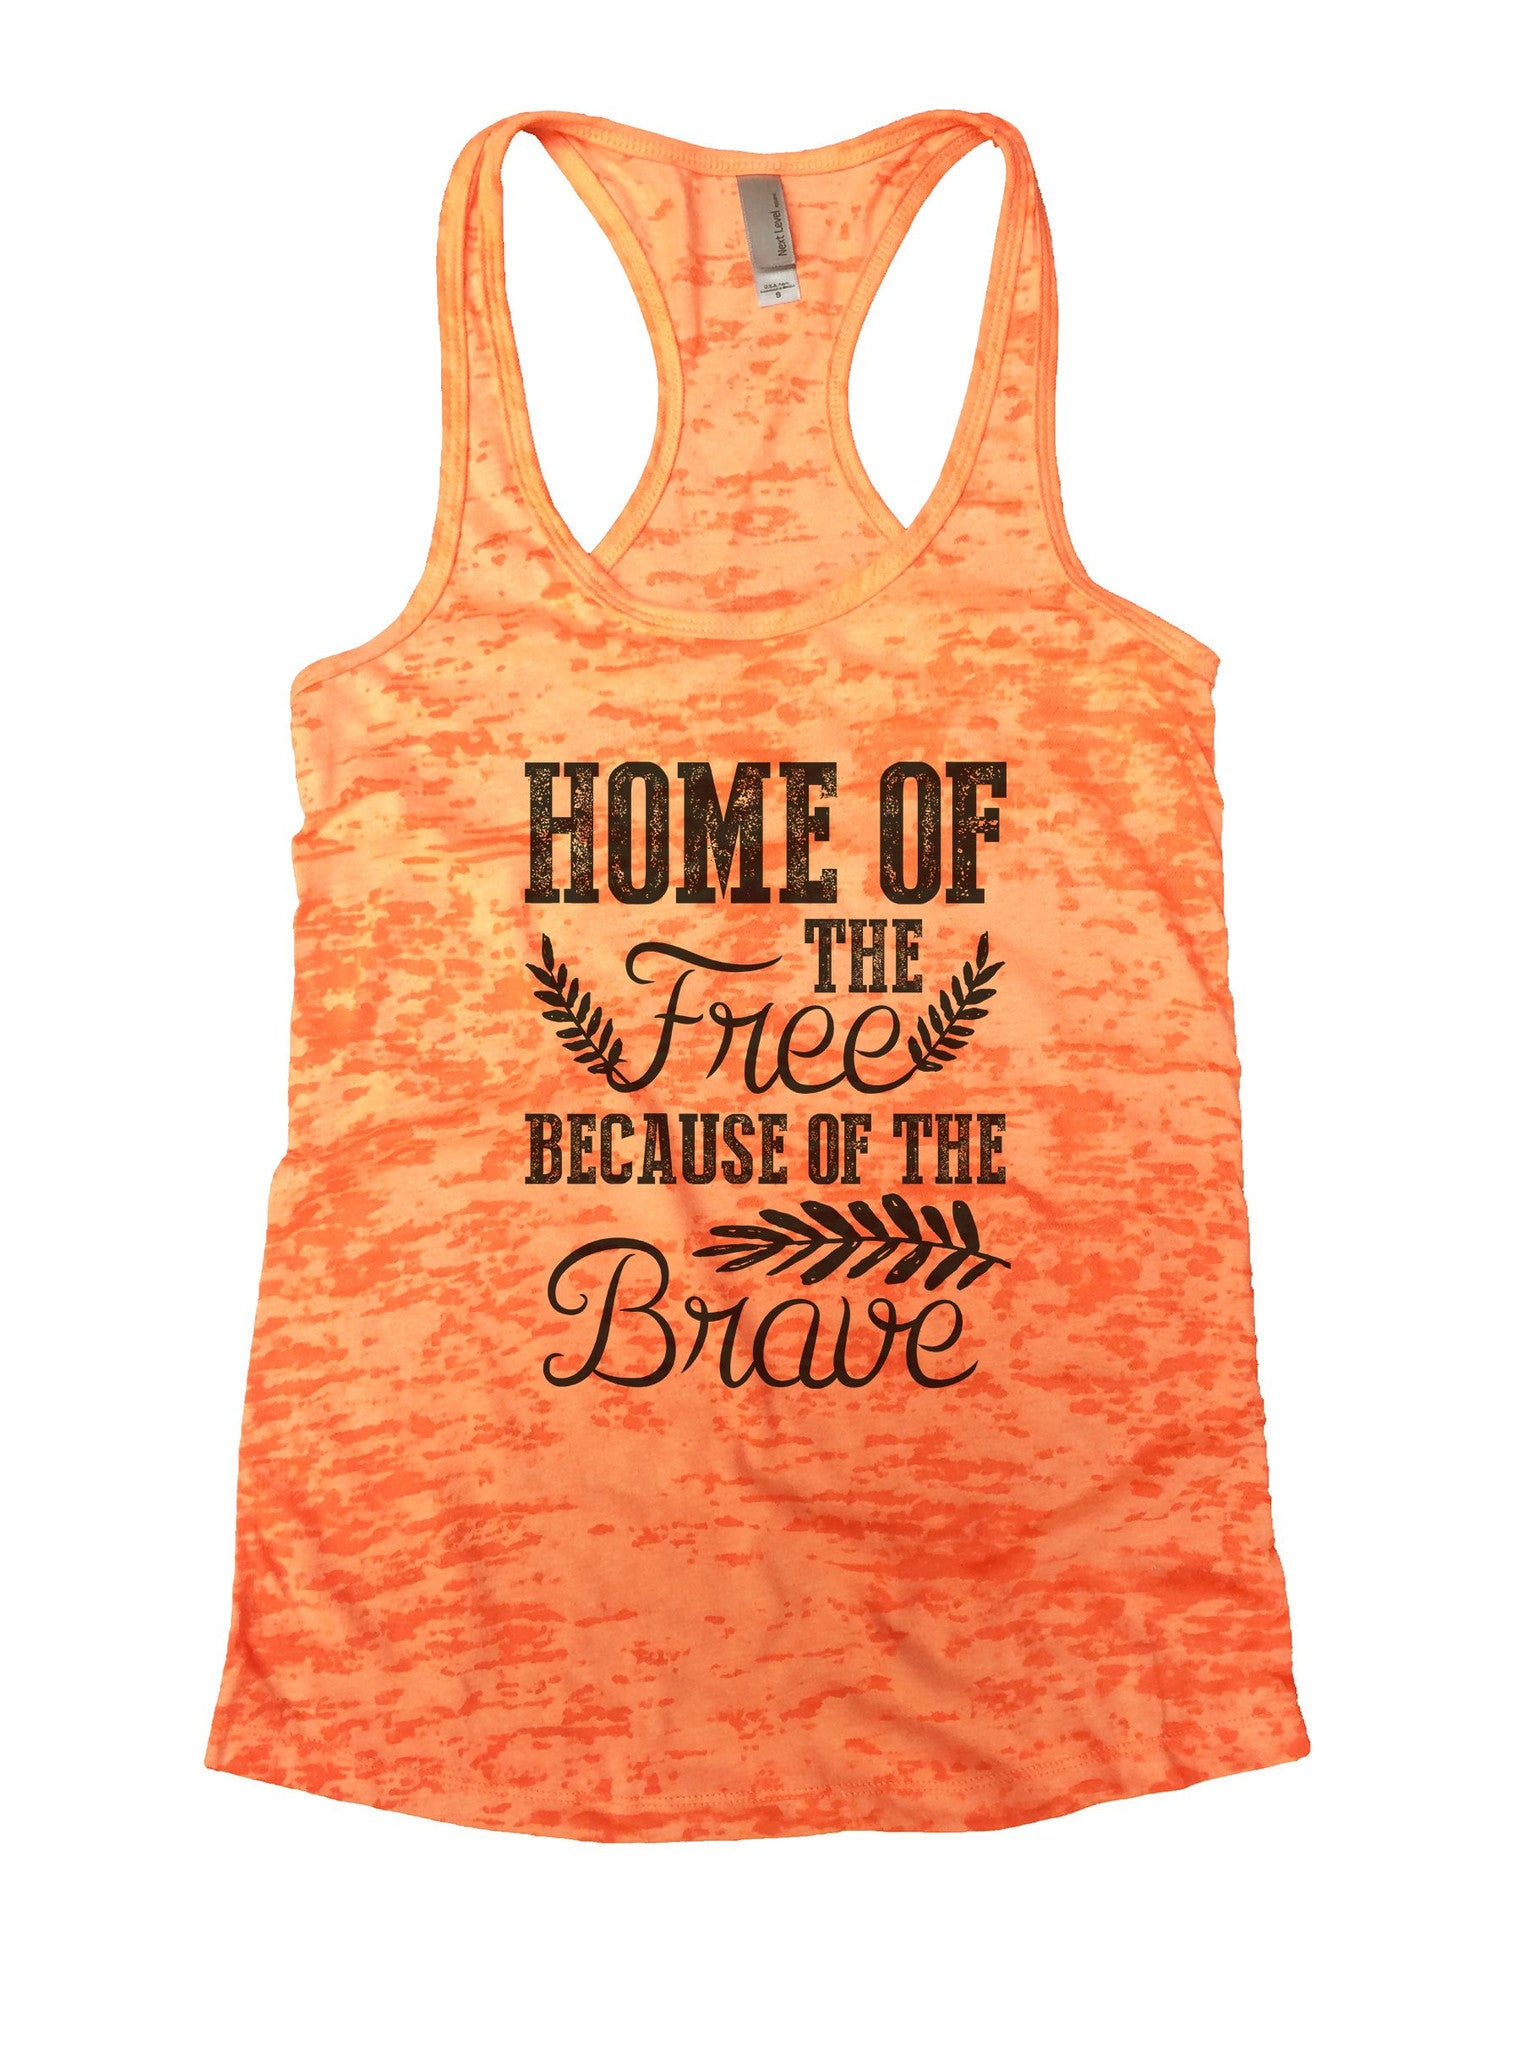 Home Of The Free Because Of The Brave Burnout Tank Top By BurnoutTankTops.com - 978 - Funny Shirts Tank Tops Burnouts and Triblends  - 3